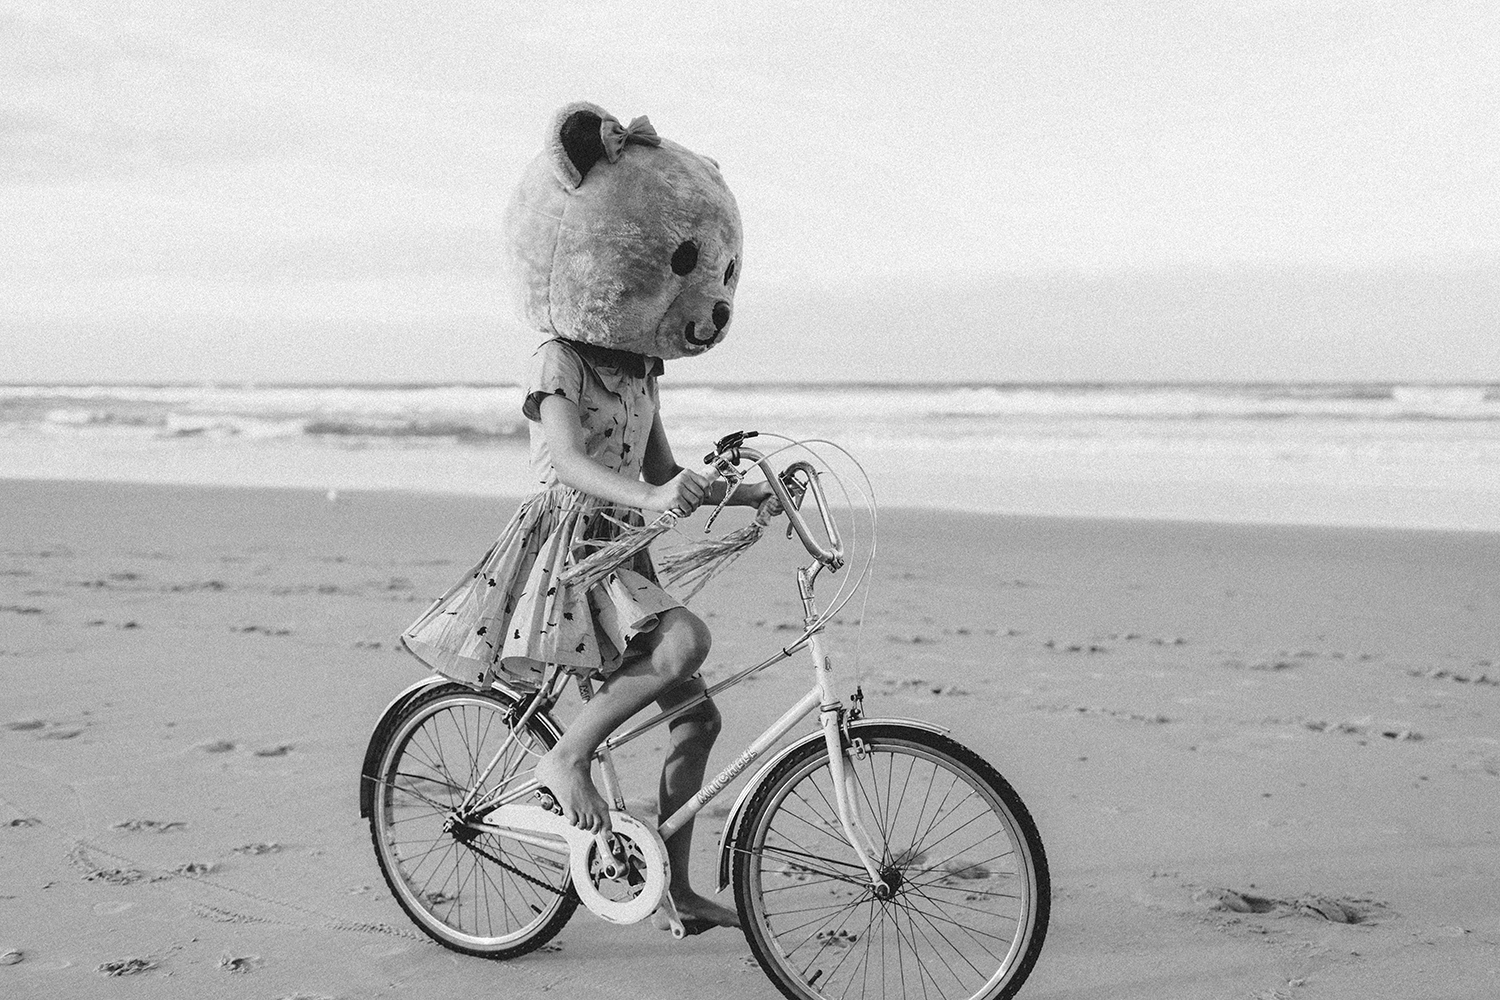 bike-and-bear-bw105.jpg